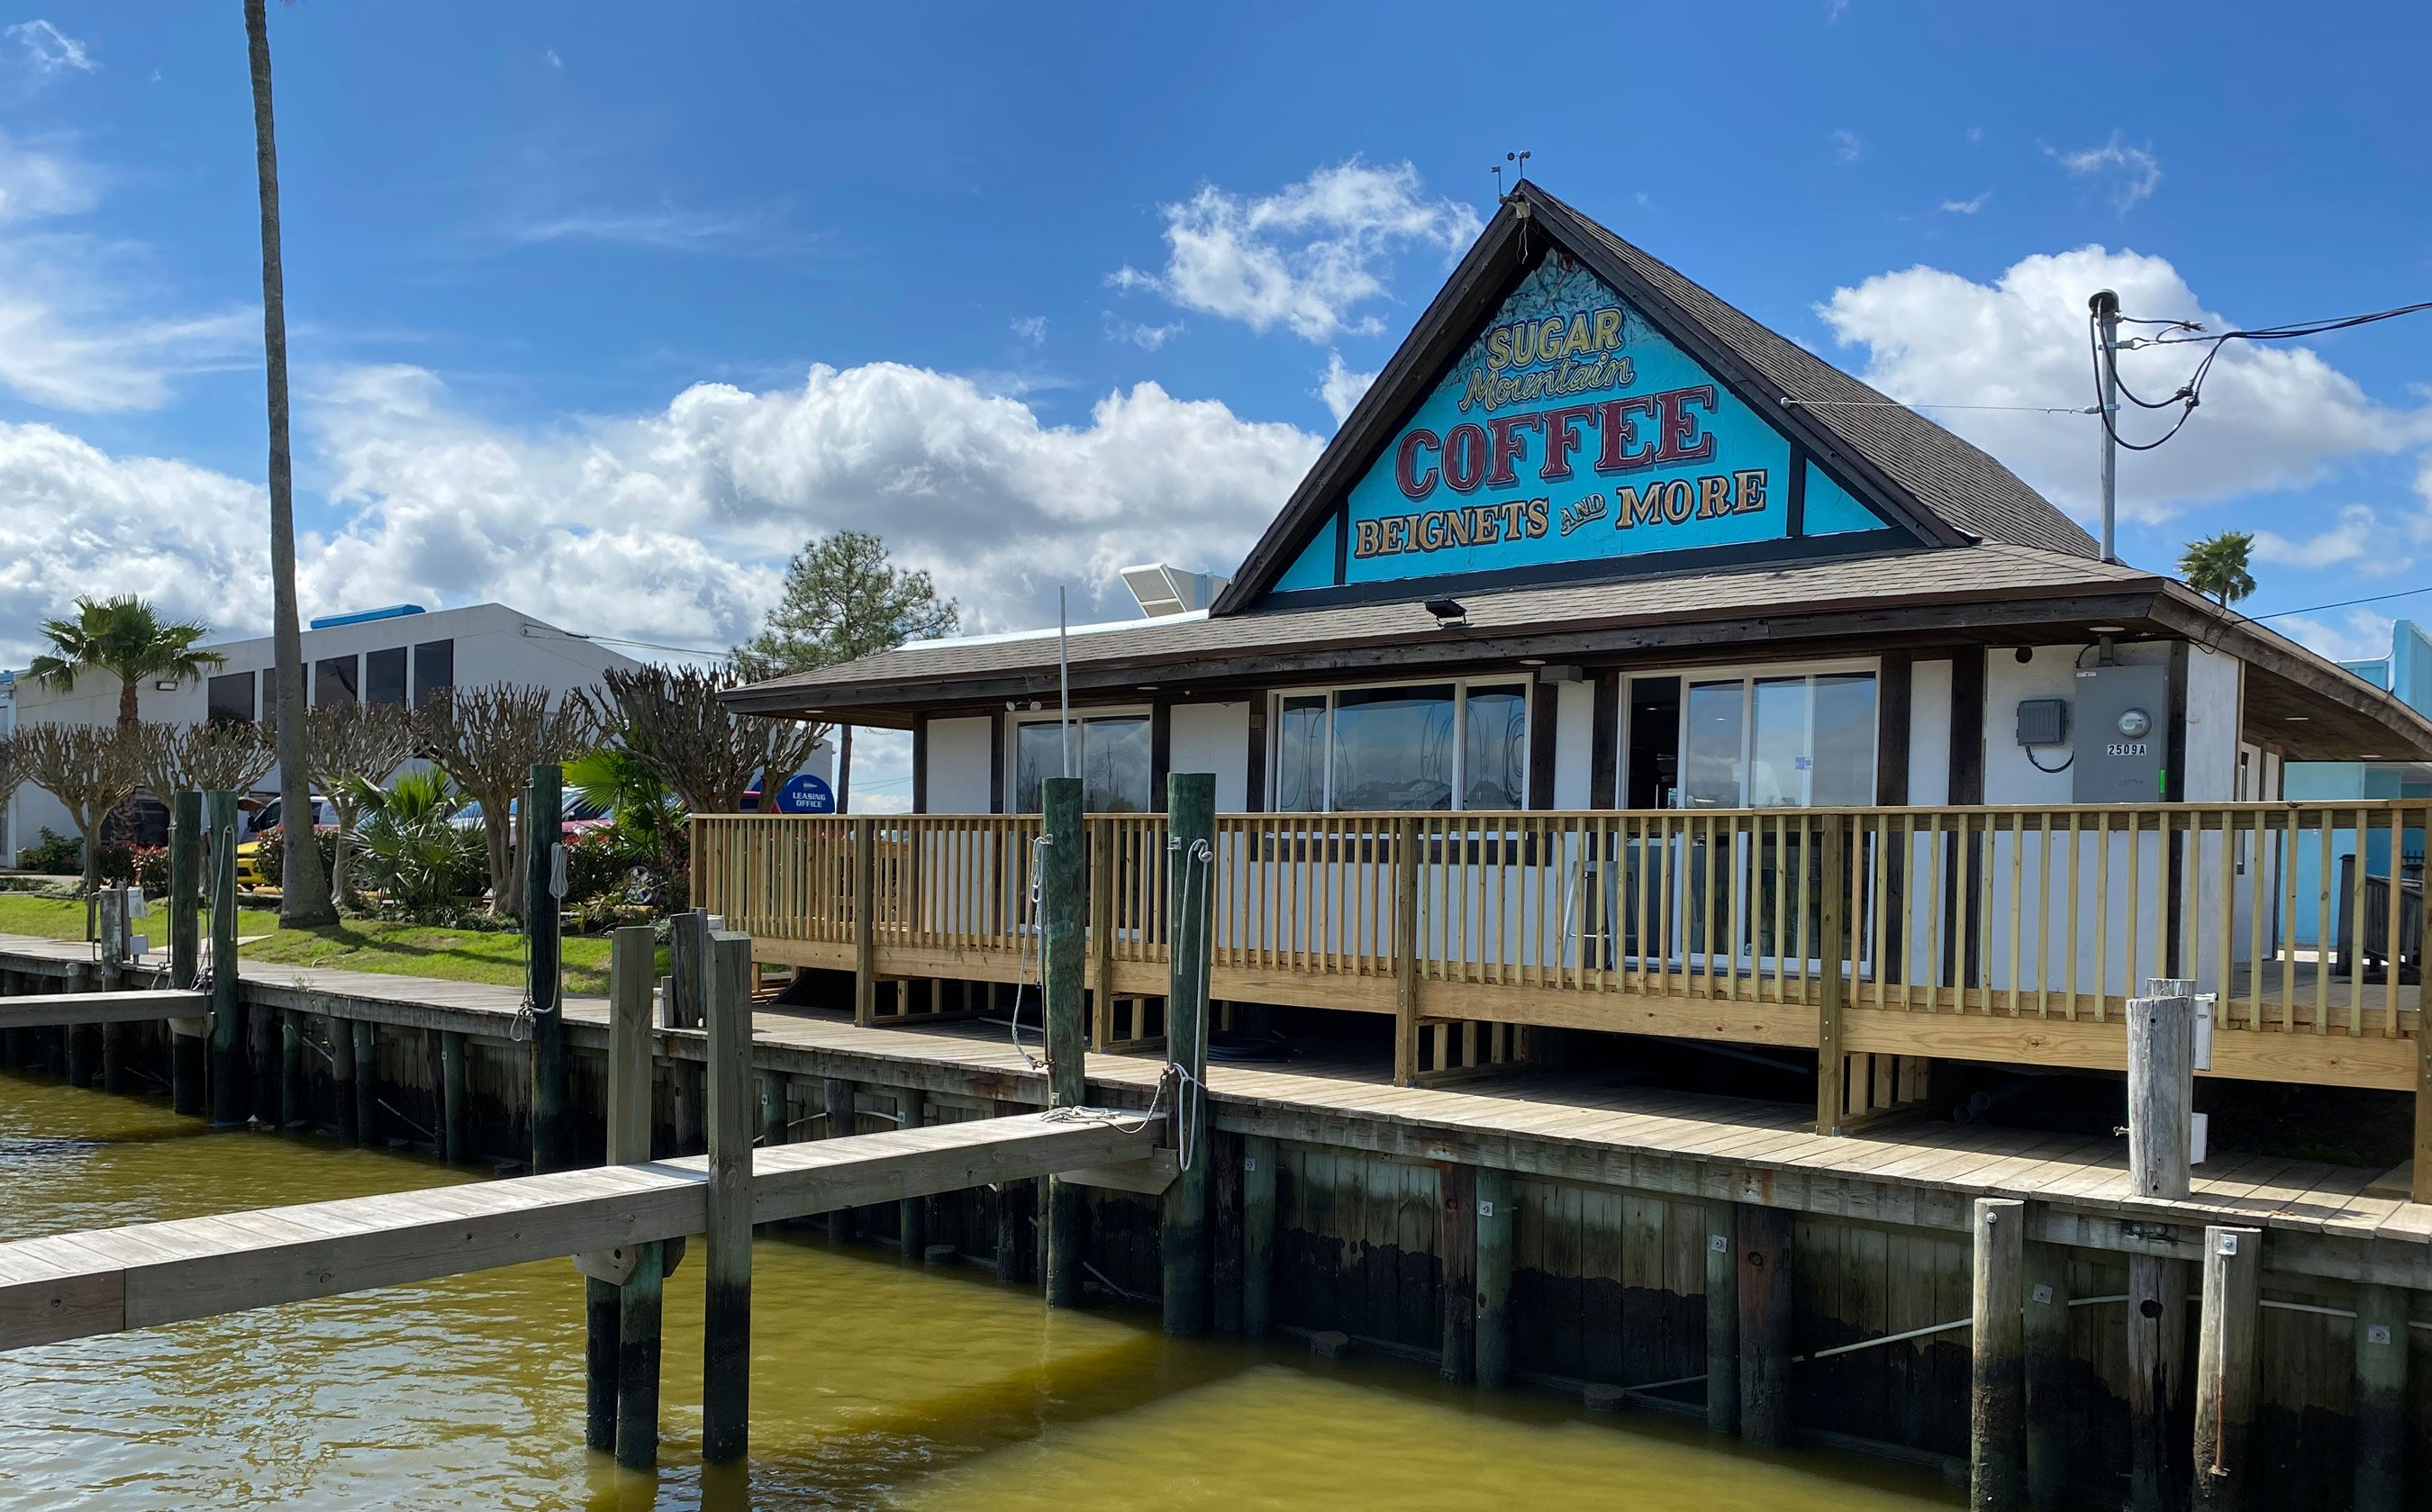 Sugar Mountain, a Seabrook Coffee Shop